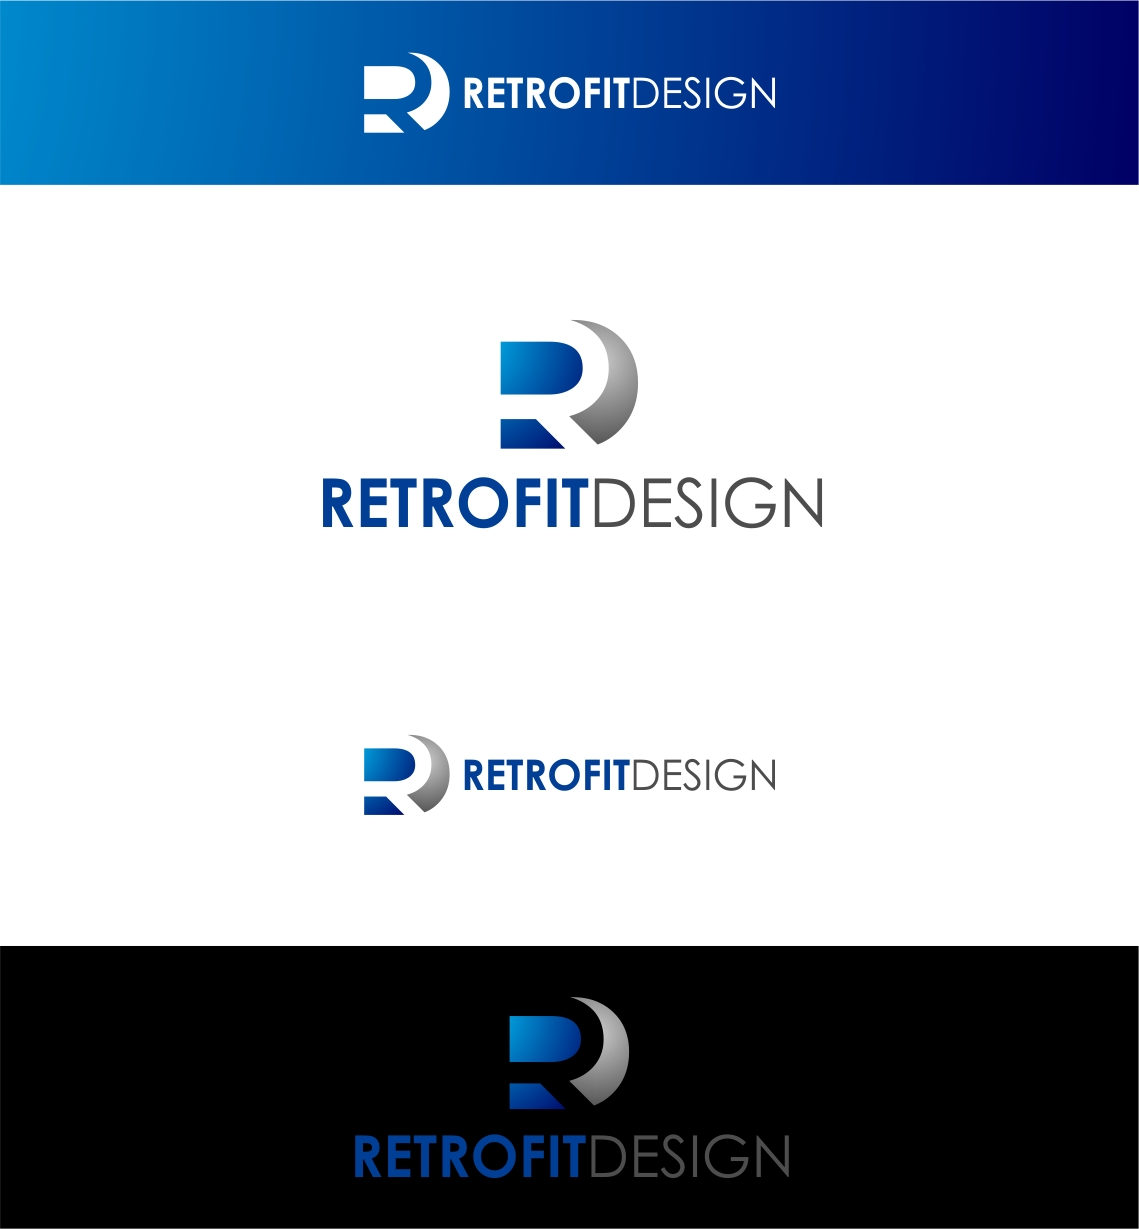 Logo Design by haidu - Entry No. 188 in the Logo Design Contest Inspiring Logo Design for retrofit design.